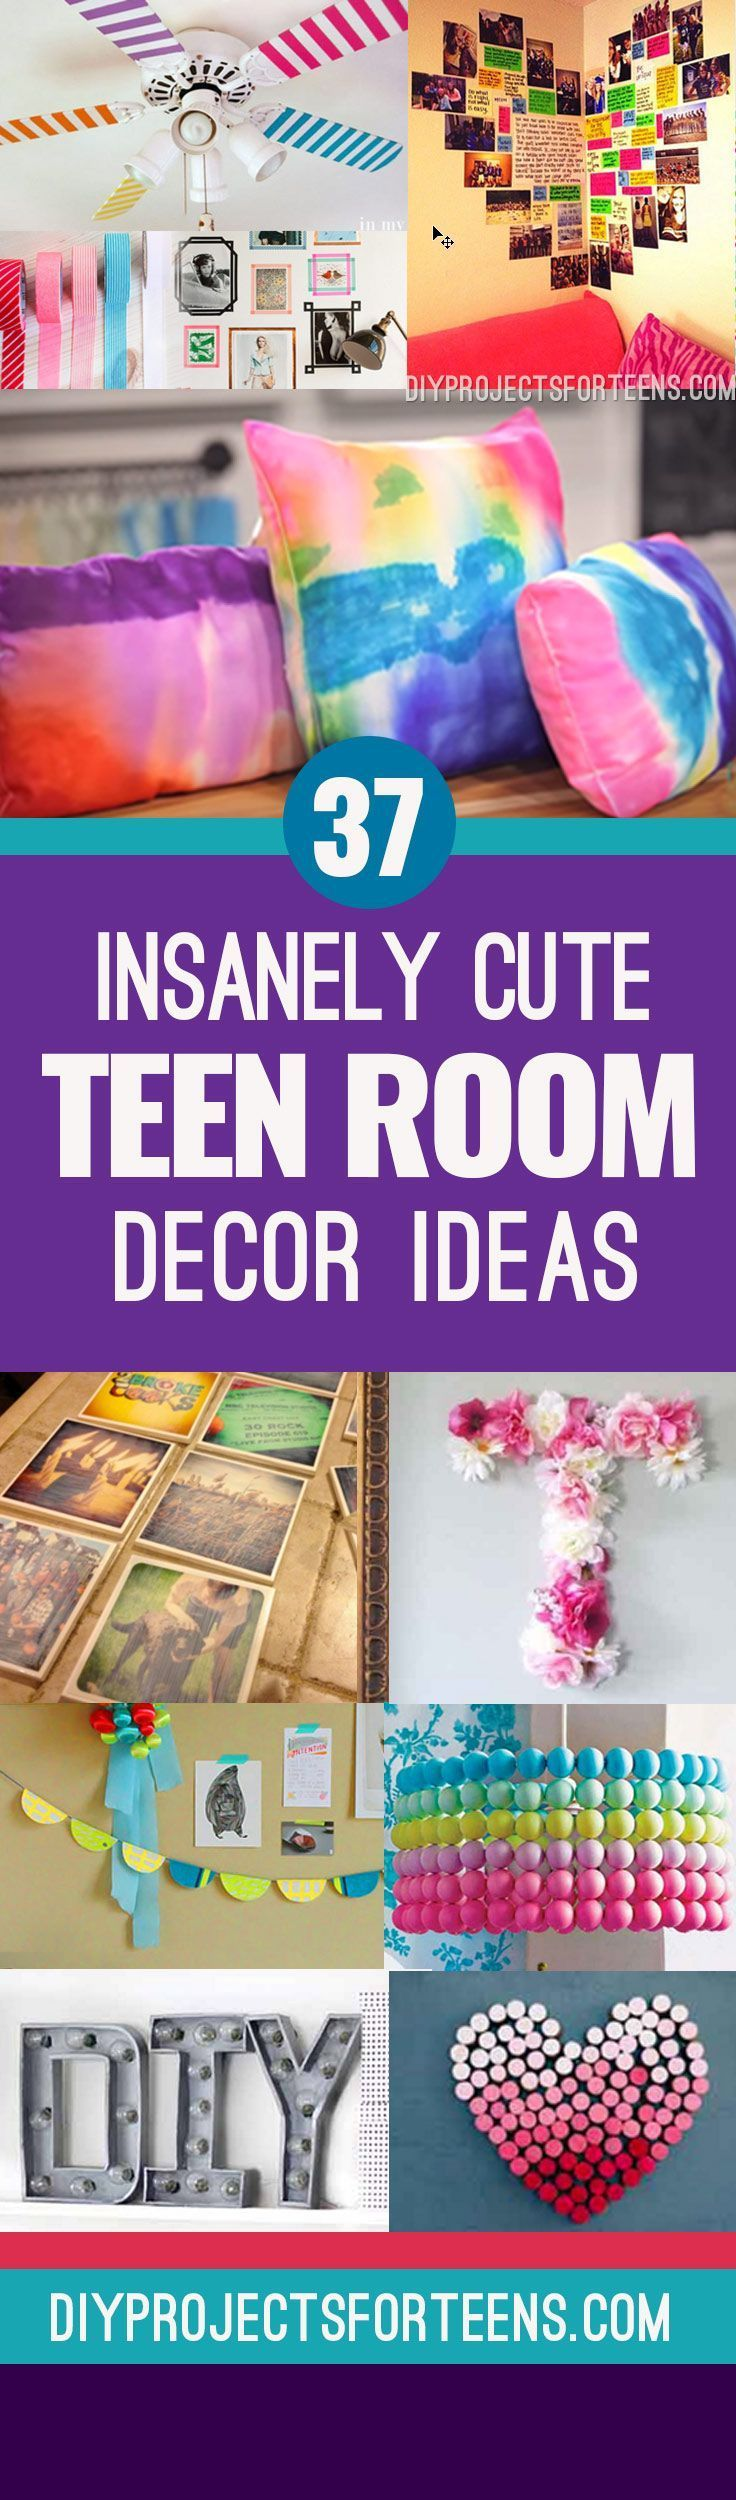 37 insanely cute teen bedroom ideas for diy decor girls for Cute bedroom accessories